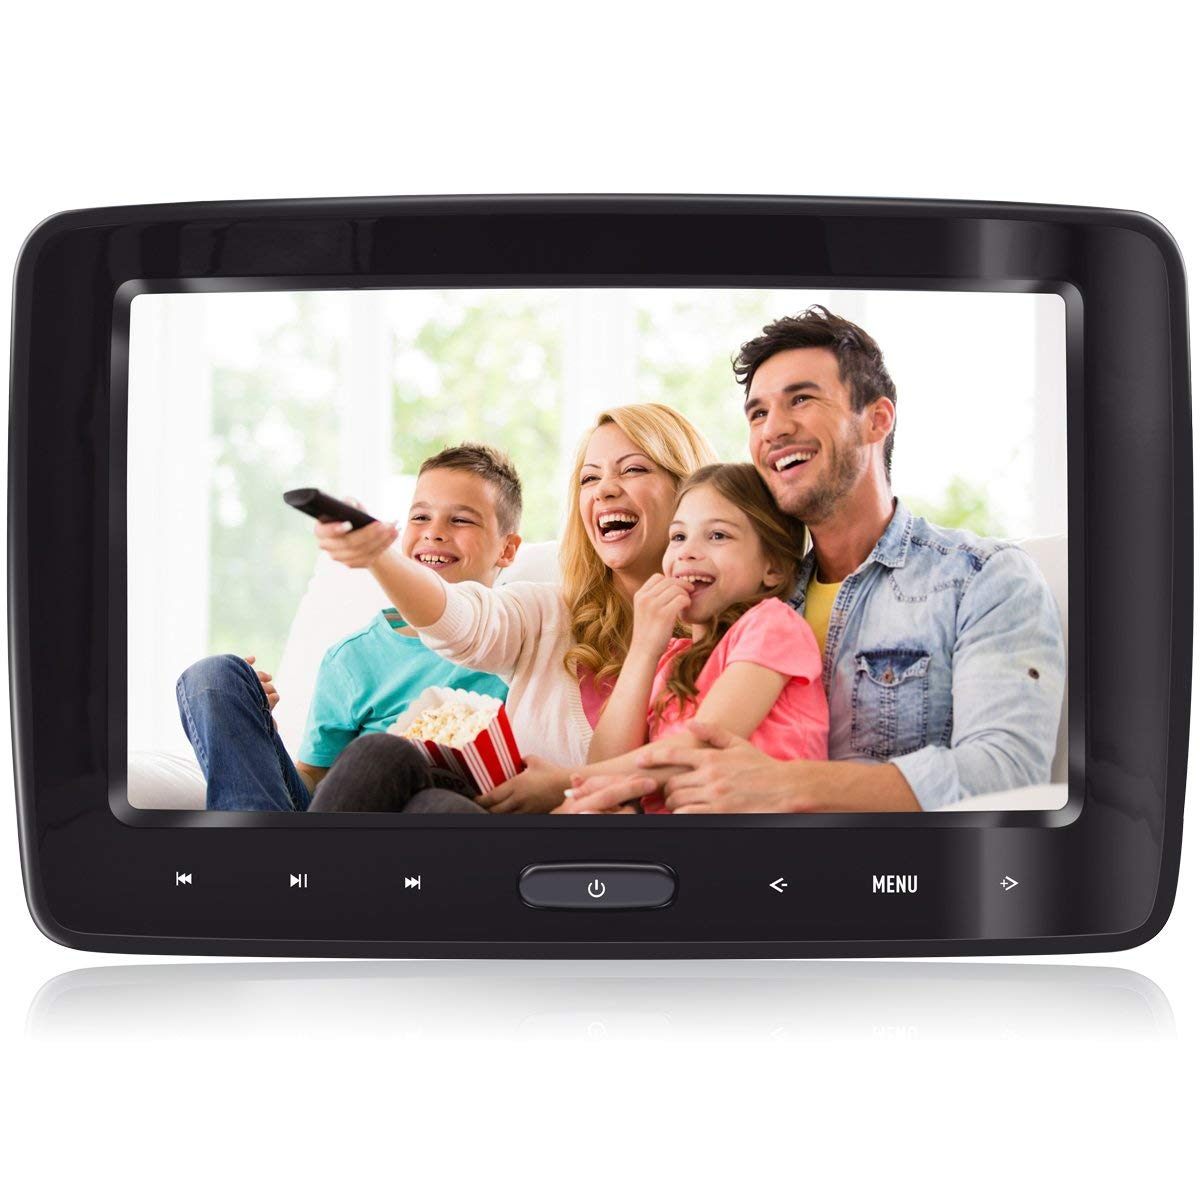 Headrest DVD Player for Car Can Use Both in Car or at Home as DVD Player eRapta Second Generation Gift Idea by eRapta